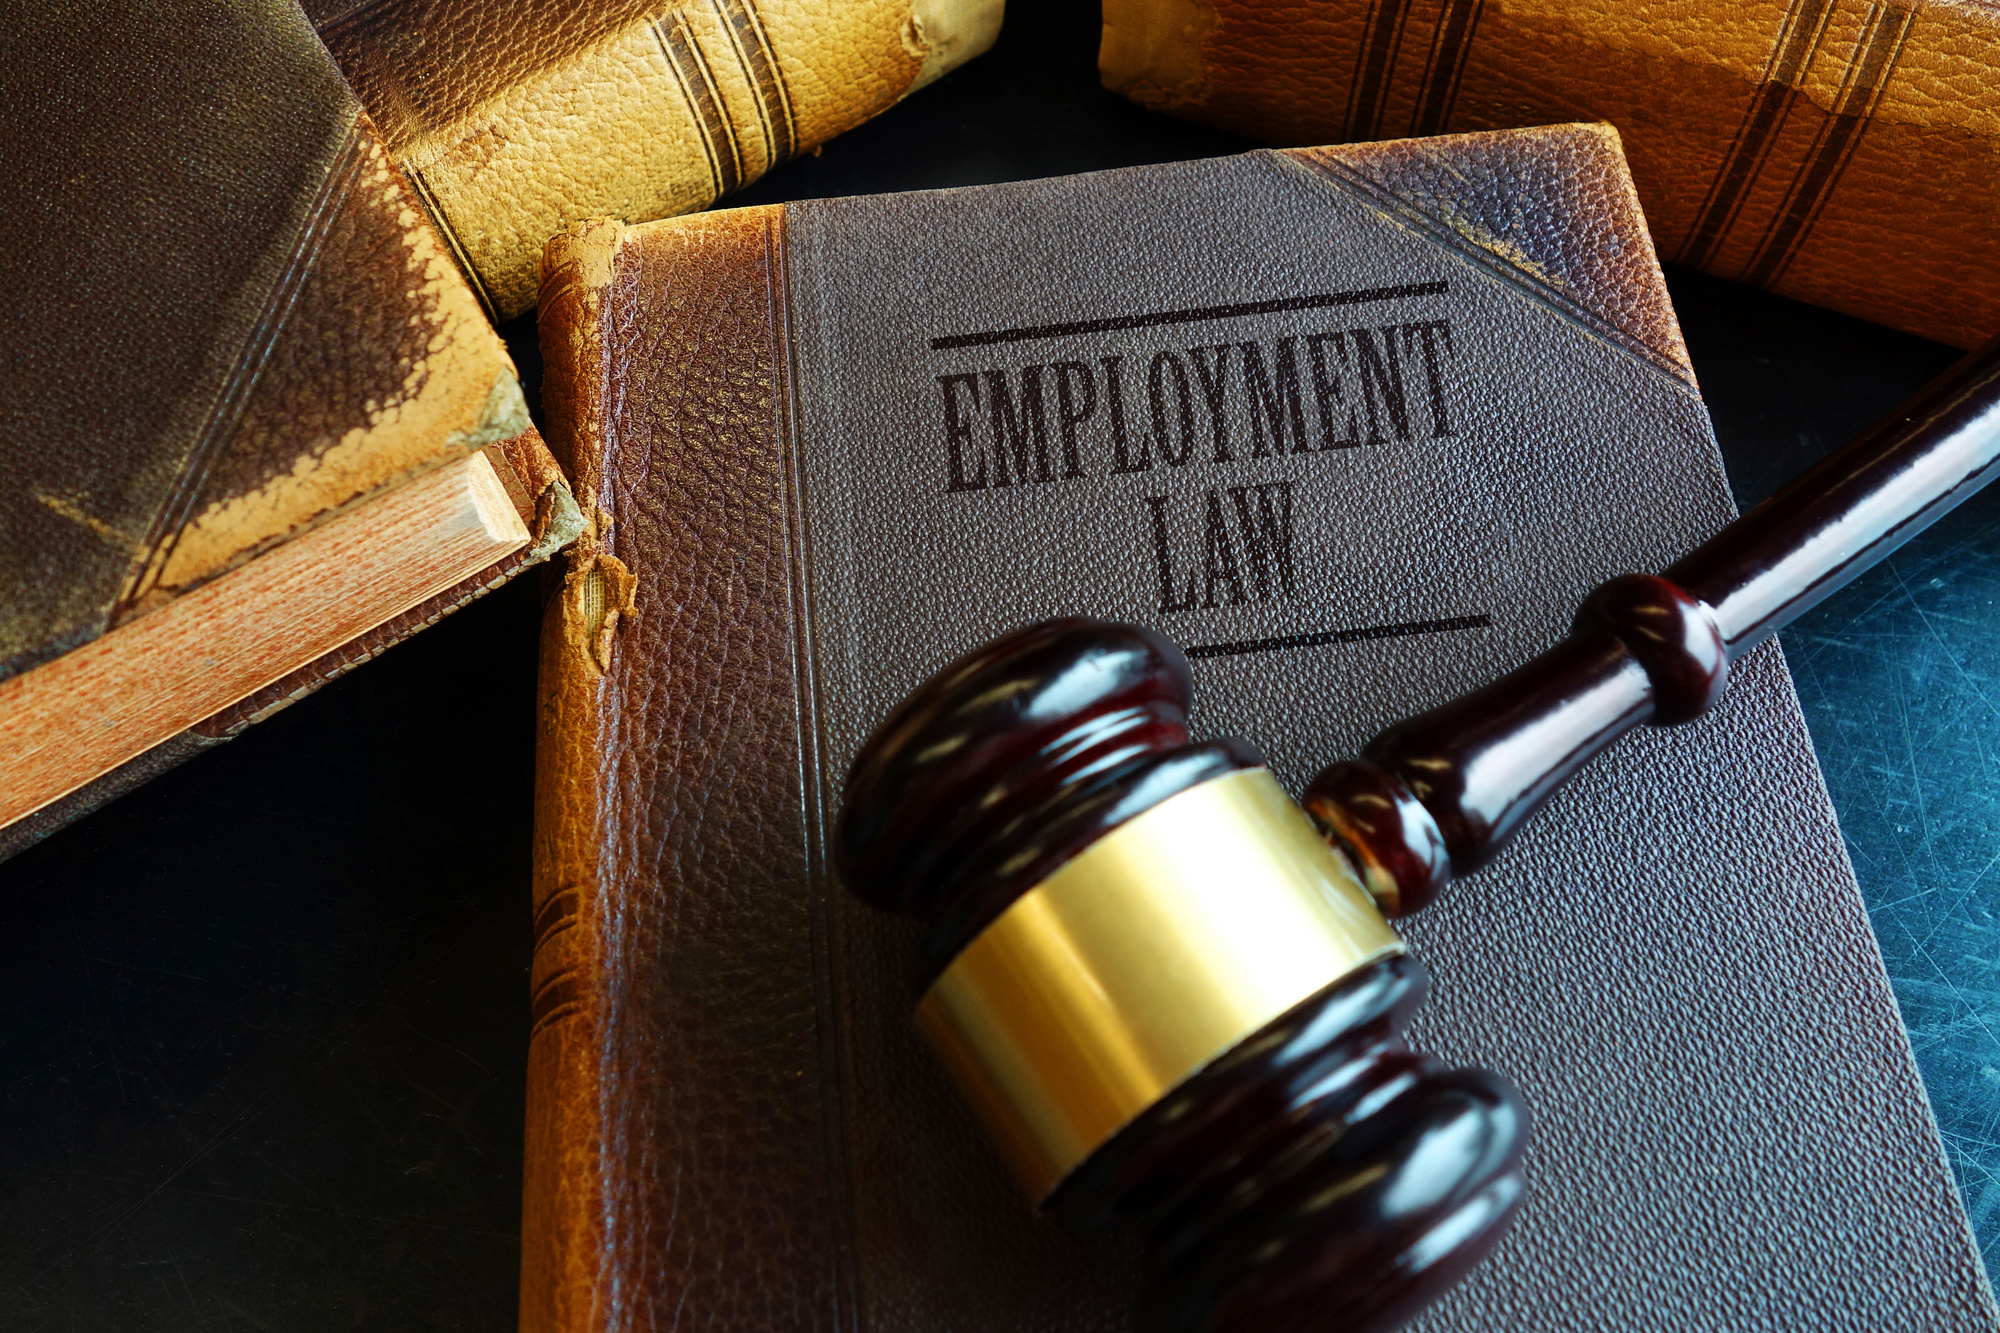 Questions about your employment or employees? Contact Aubrie Hicks to understand your rights and best course of action.